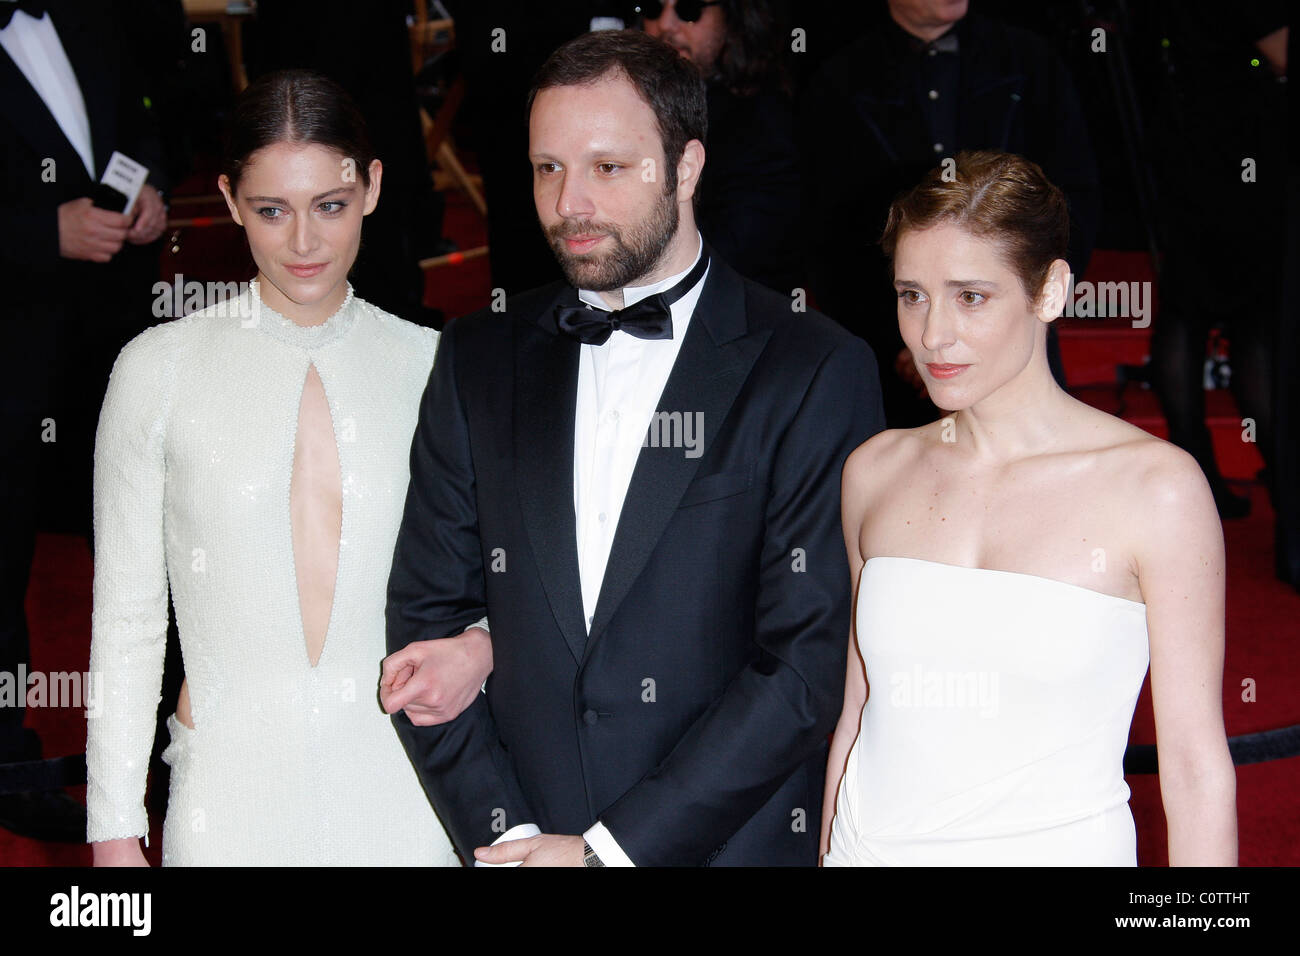 YORGOS LANTHIMOS & GUESTS 83RD ACADEMY AWARDS RED CARPET ARRIVALS KODAK THEATRE LOS ANGELES CALIFORNIA USA 27 - Stock Image